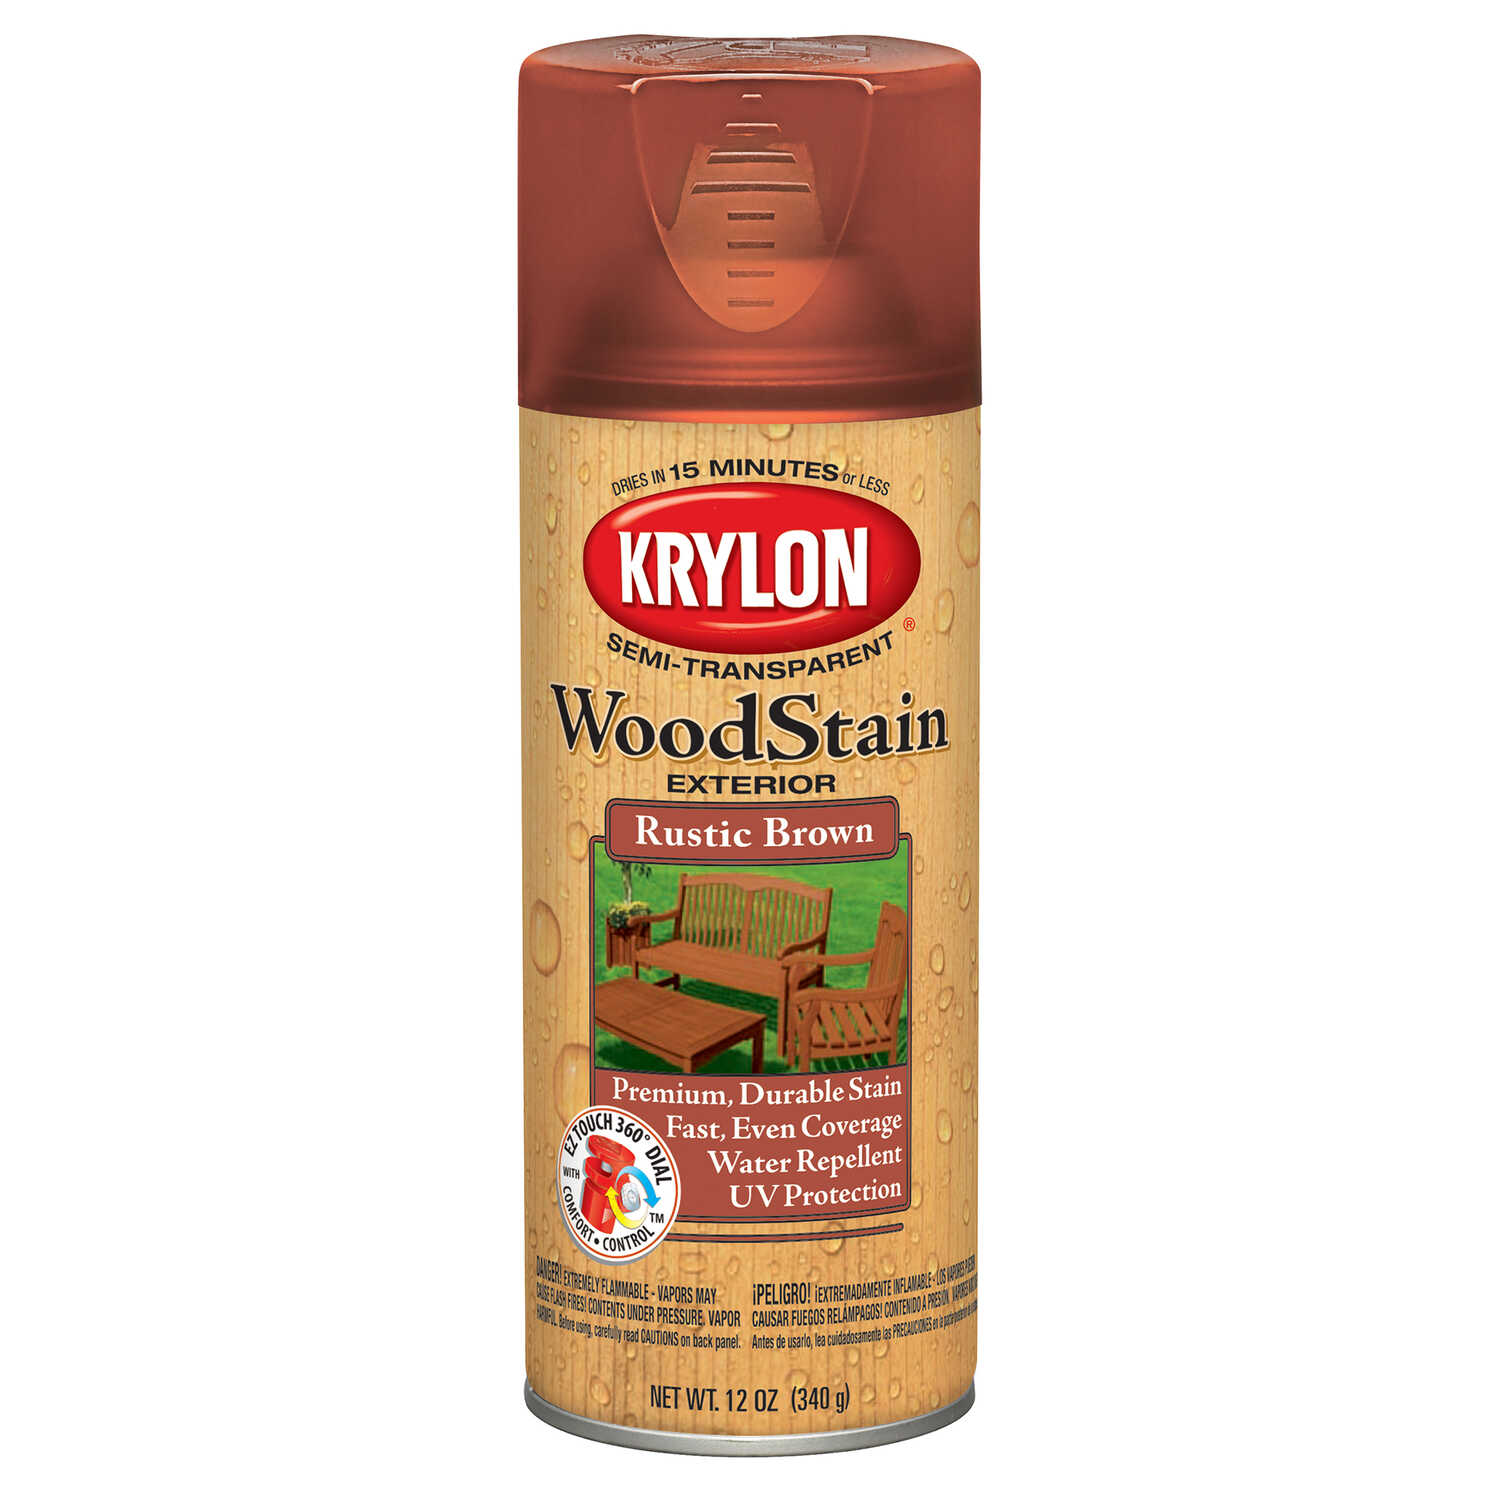 Krylon  Semi-Transparent  Smooth  Rustic Brown  Oil-Based  Oil  Wood Stain  12 oz.